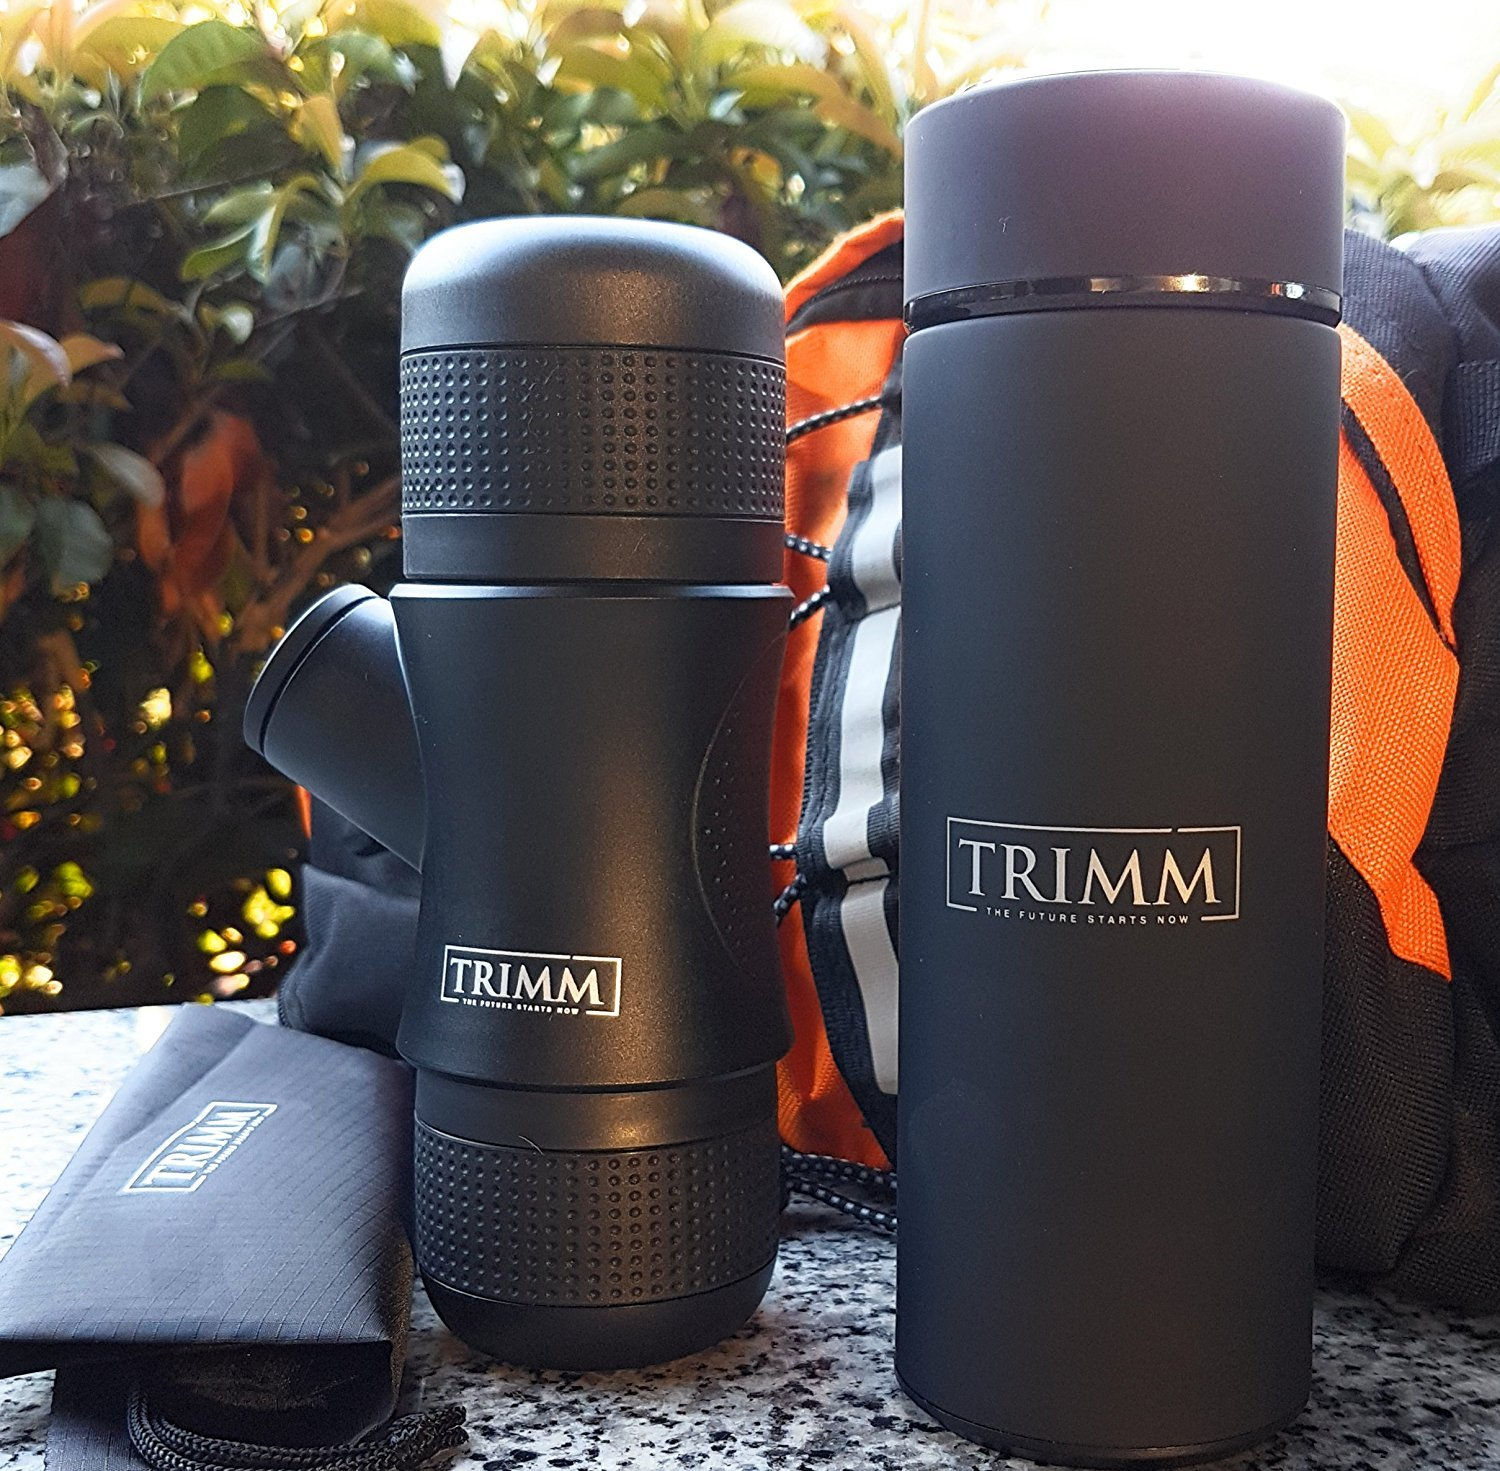 Trimm Portable Hand Held Espresso Machine and Thermos Vacuum Insulated Double Wall | Portable Espresso Maker and Flask | Single Cup Coffee Maker and Tea Thermos Bottle | Travel Set Great Gift Idea by TRIMM THE FUTURE STARTS NOW (Image #9)